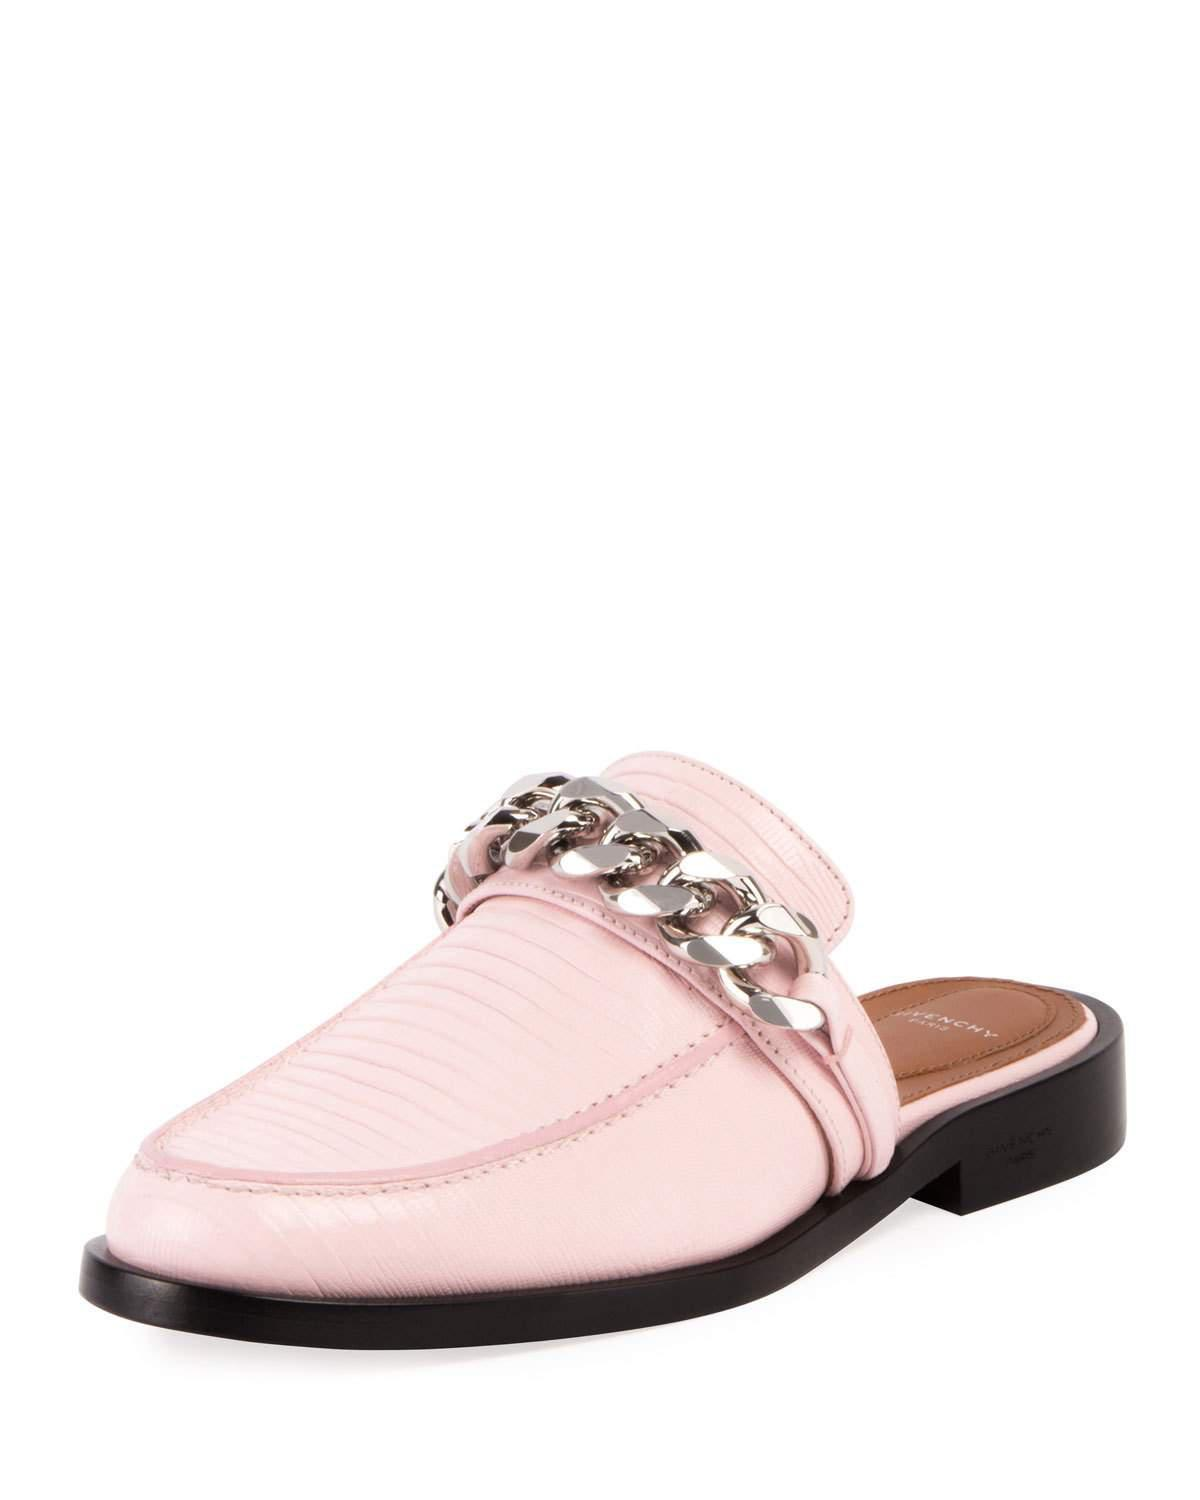 5882644432b48 Givenchy Lizard-embossed Chain Loafer Mule in Pink - Lyst